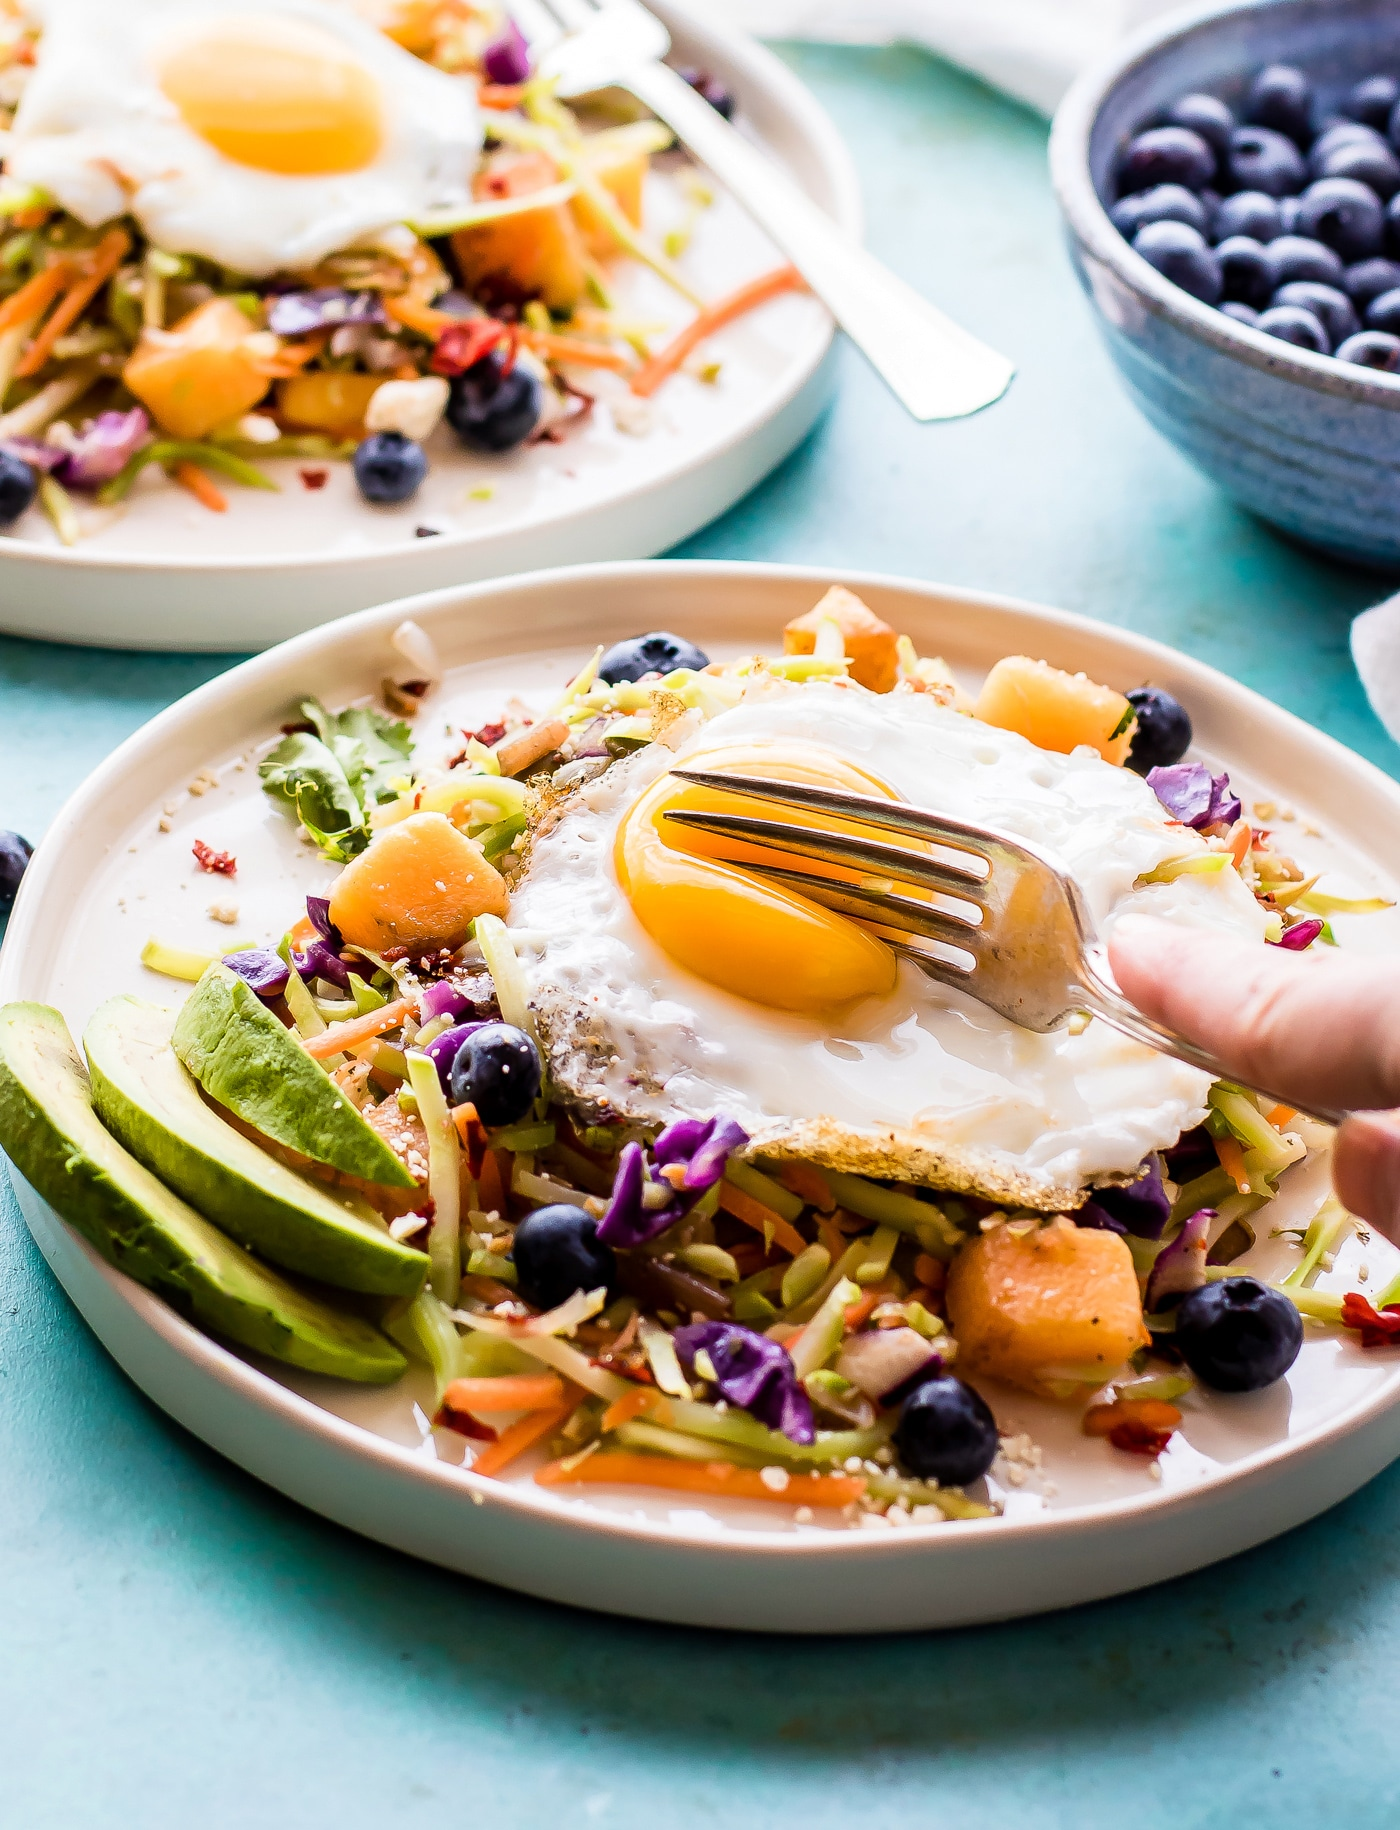 Breakfast salad to start the day! A nourishing warm Paleo meal with broccoli slaw, squash, berries, and fried eggs. A breakfast salad worth waking up for!